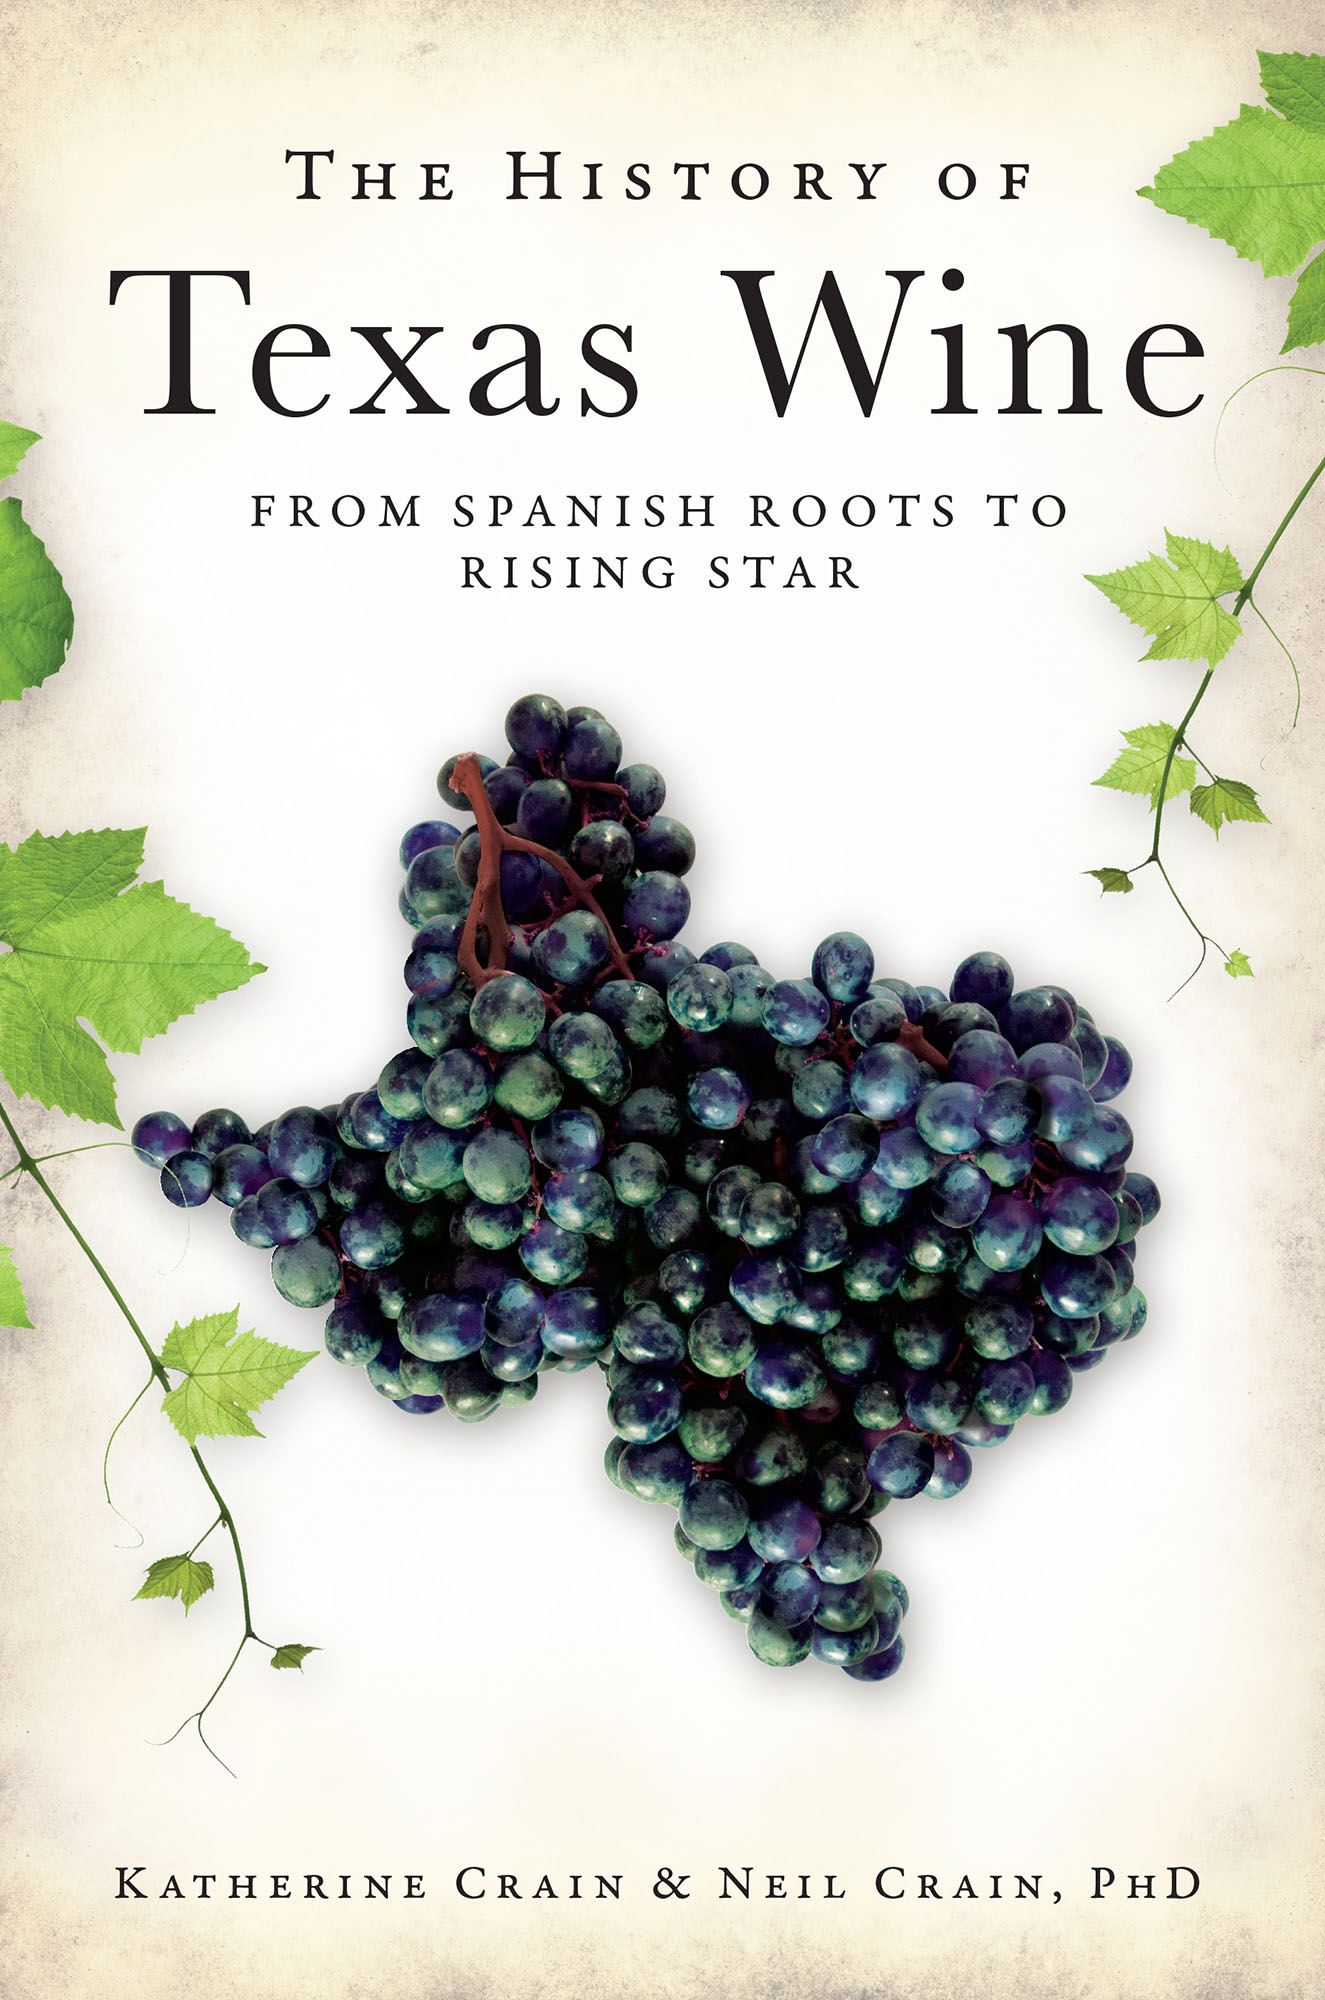 The History of Texas Wine From Spanish Roots to Rising Star